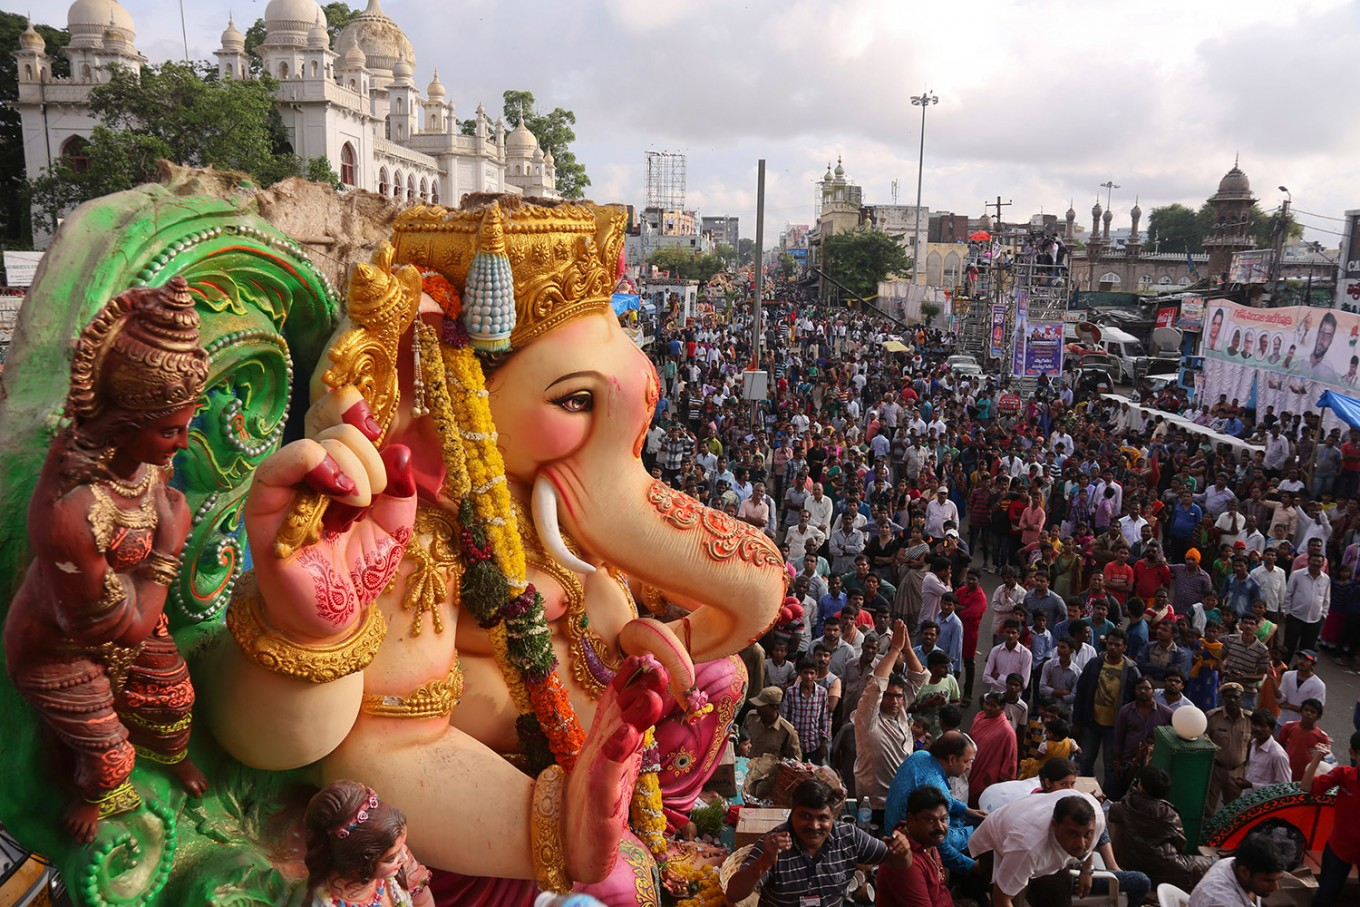 A huge idol of elephant-headed Hindu god Ganesha is taken on a truck in a procession before immersing in the Hussain Sagar Lake on the final day of the festival of Ganesh Chaturthi in Hyderabad, India, Thursday, Sept. 15, 2016. The immersion marks the end of the ten-day long festival that celebrates the birth of the Hindu god. AP Photo/Mahesh Kumar A.